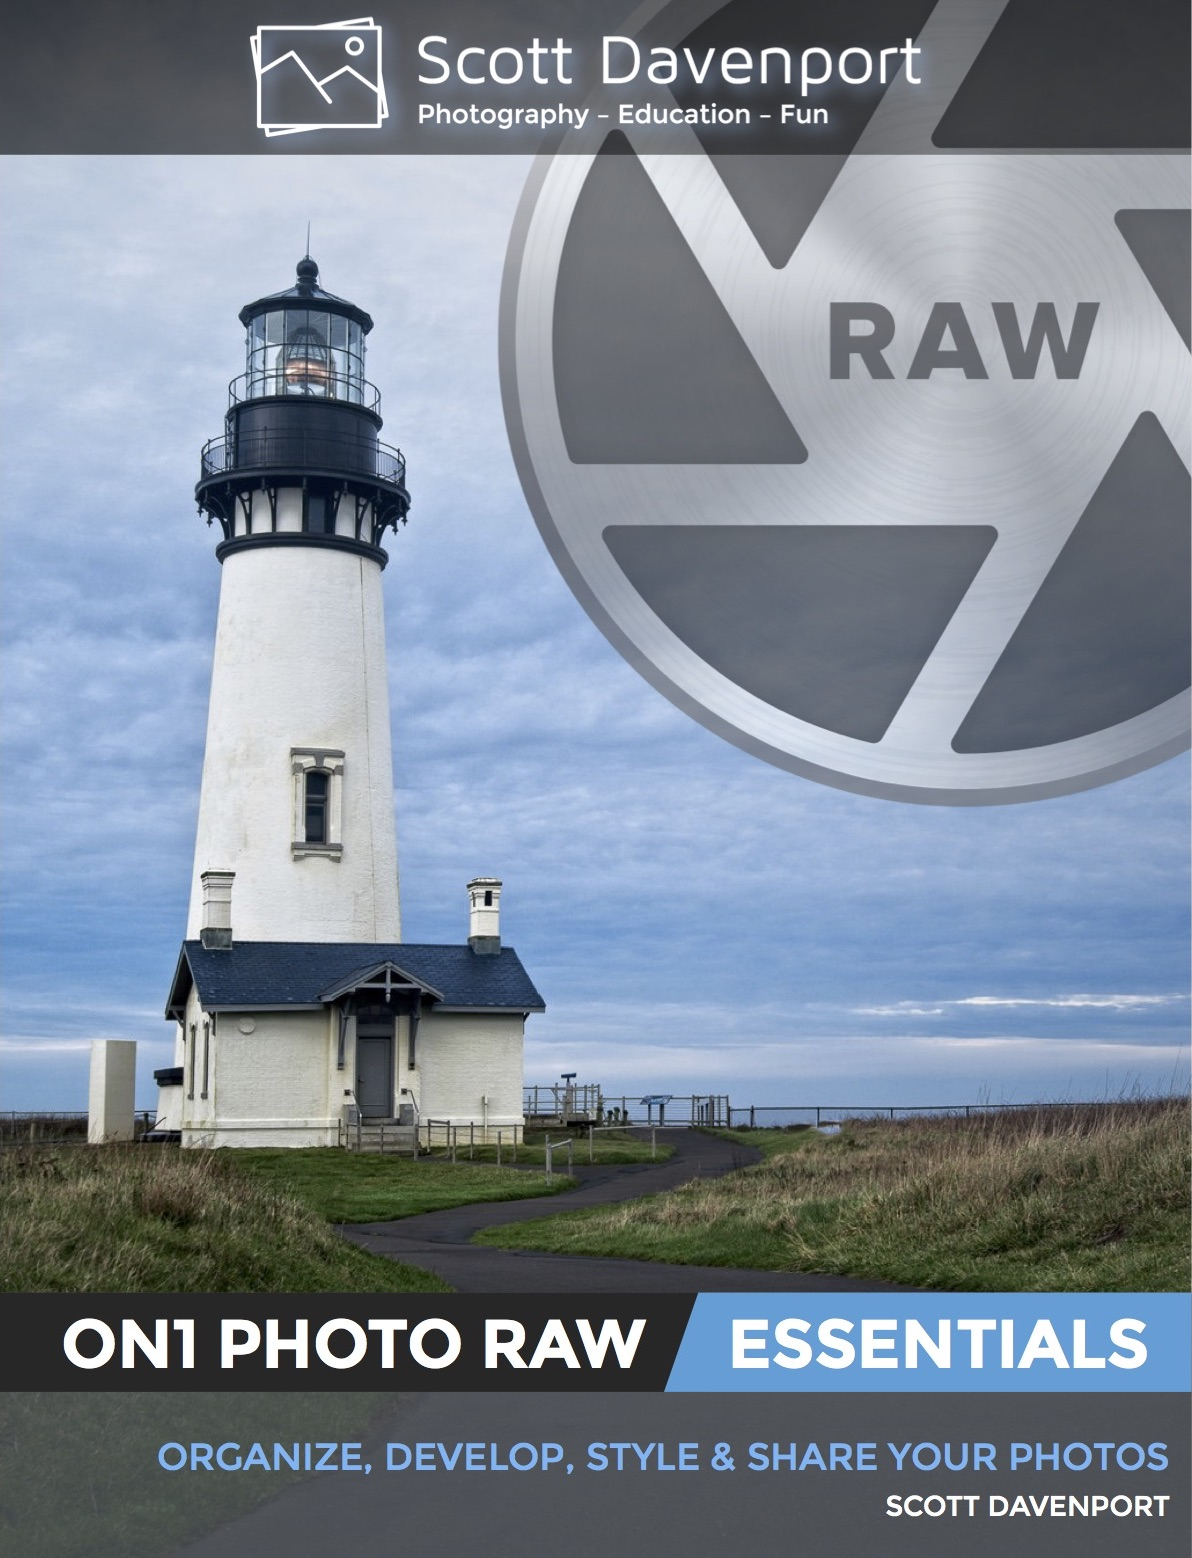 Get the most out of ON1 Photo RAW